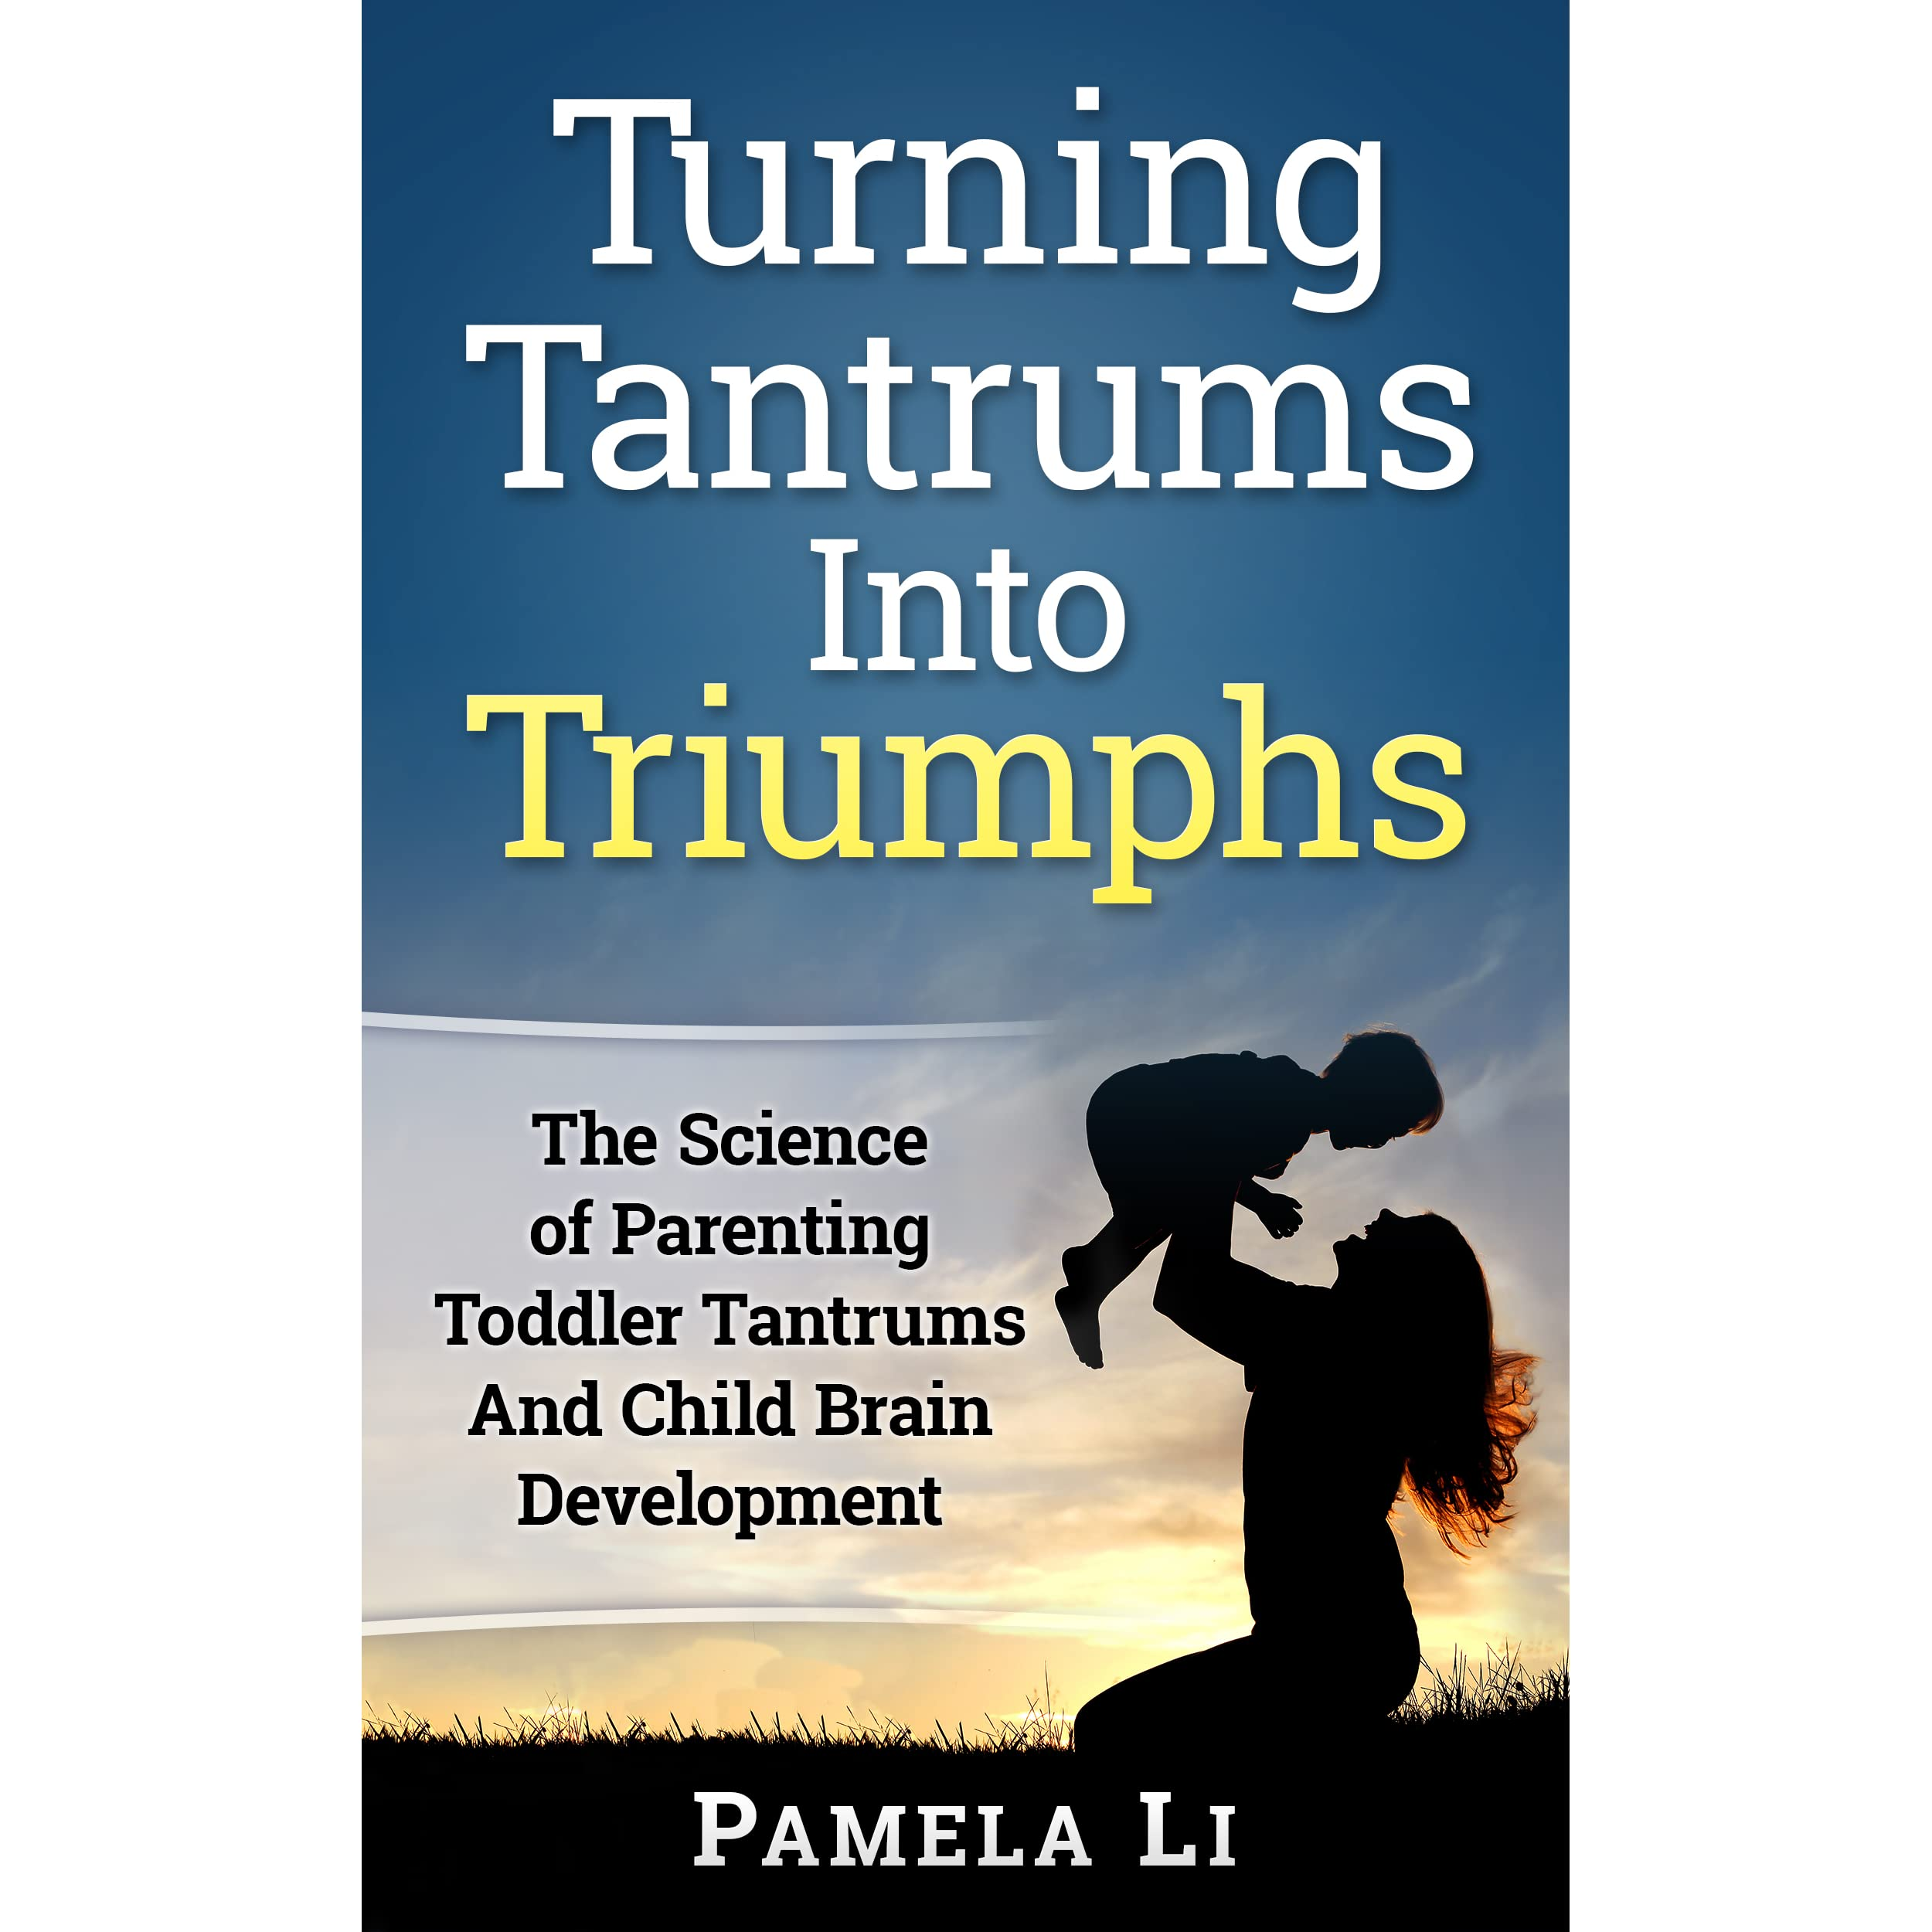 Young Adult Fiction: Tears, Triumphs And Tantrums Young Adult Fiction: Tears, Triumphs And Tantrums new images